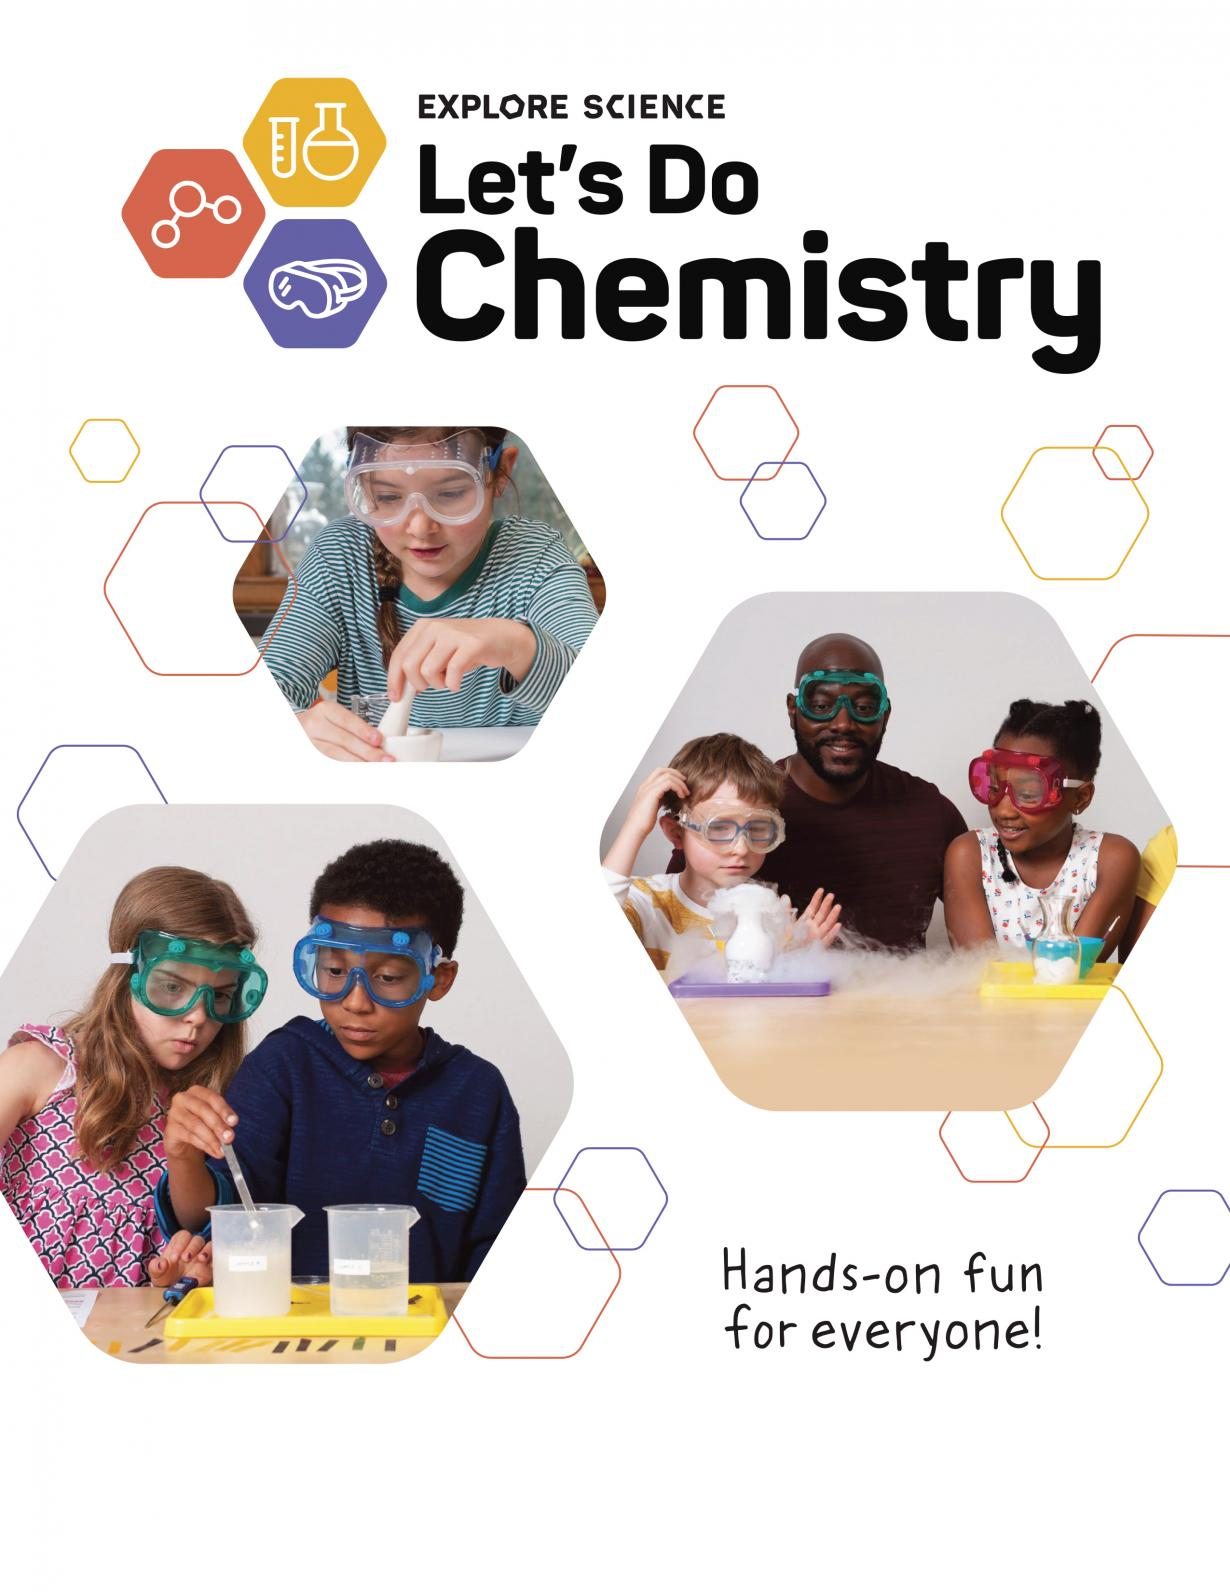 Explore Science: Let's Do Chemistry promotional materials